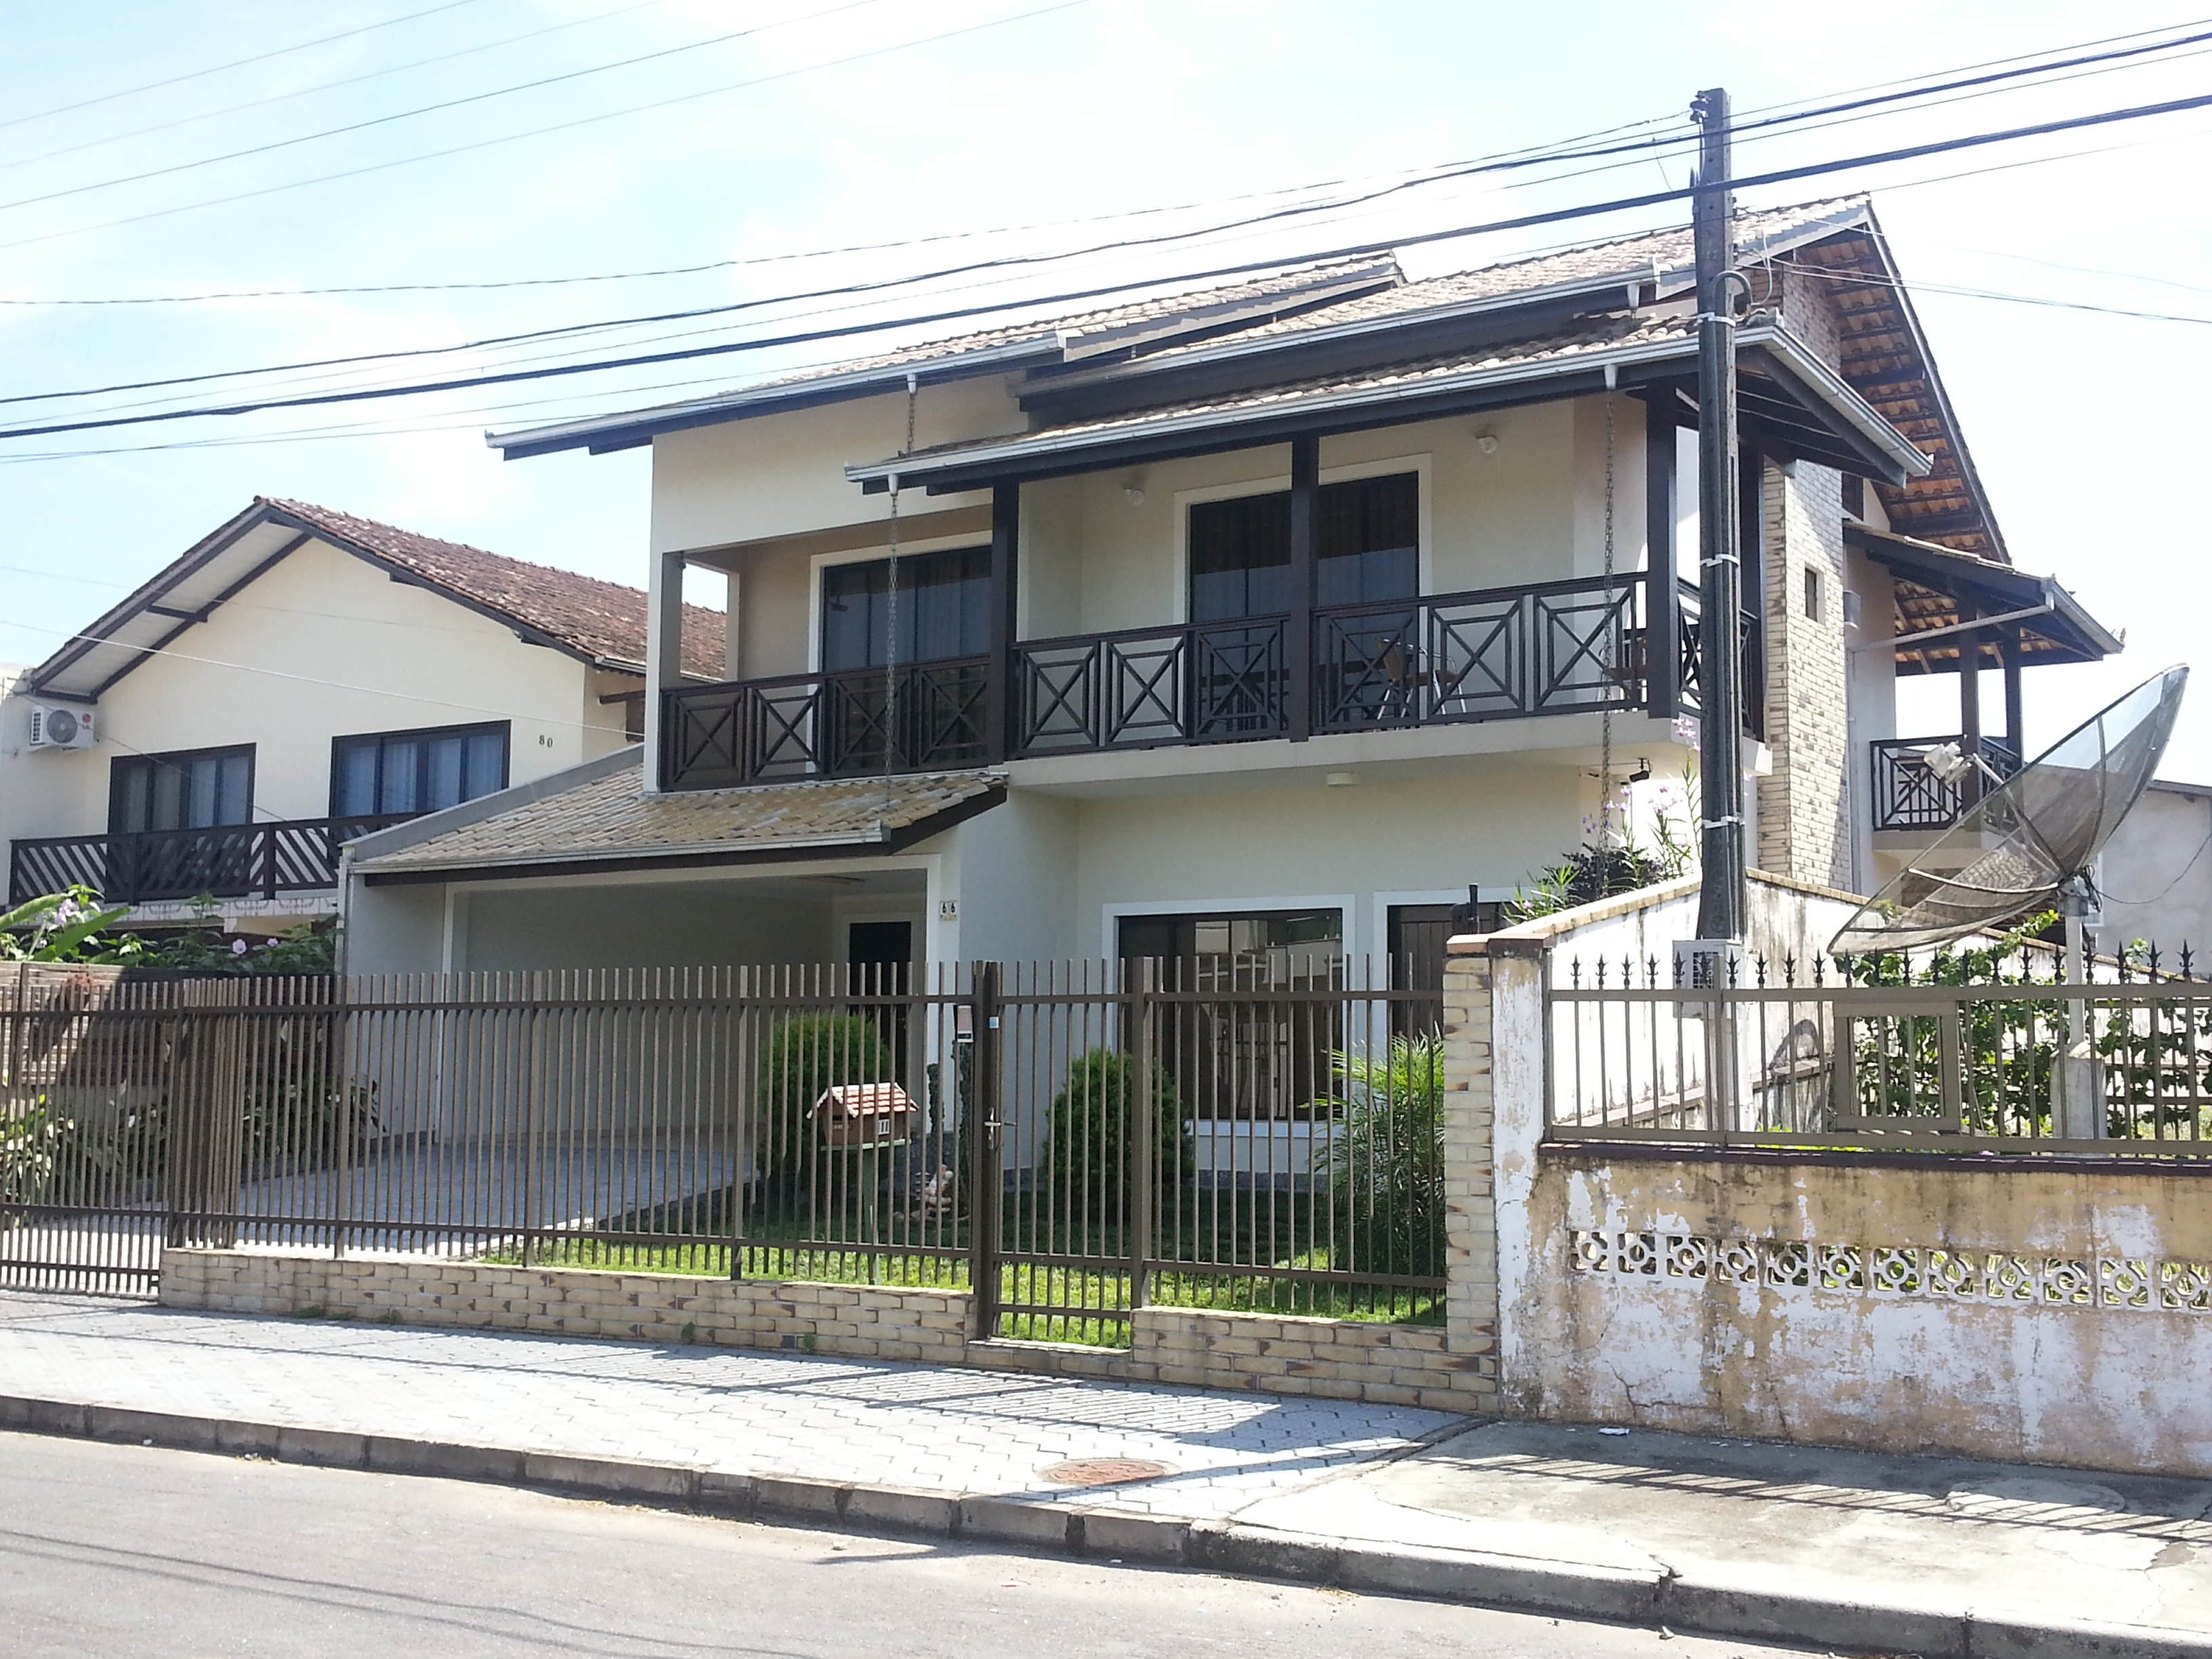 Residencia Unifamiliar Richlin title=